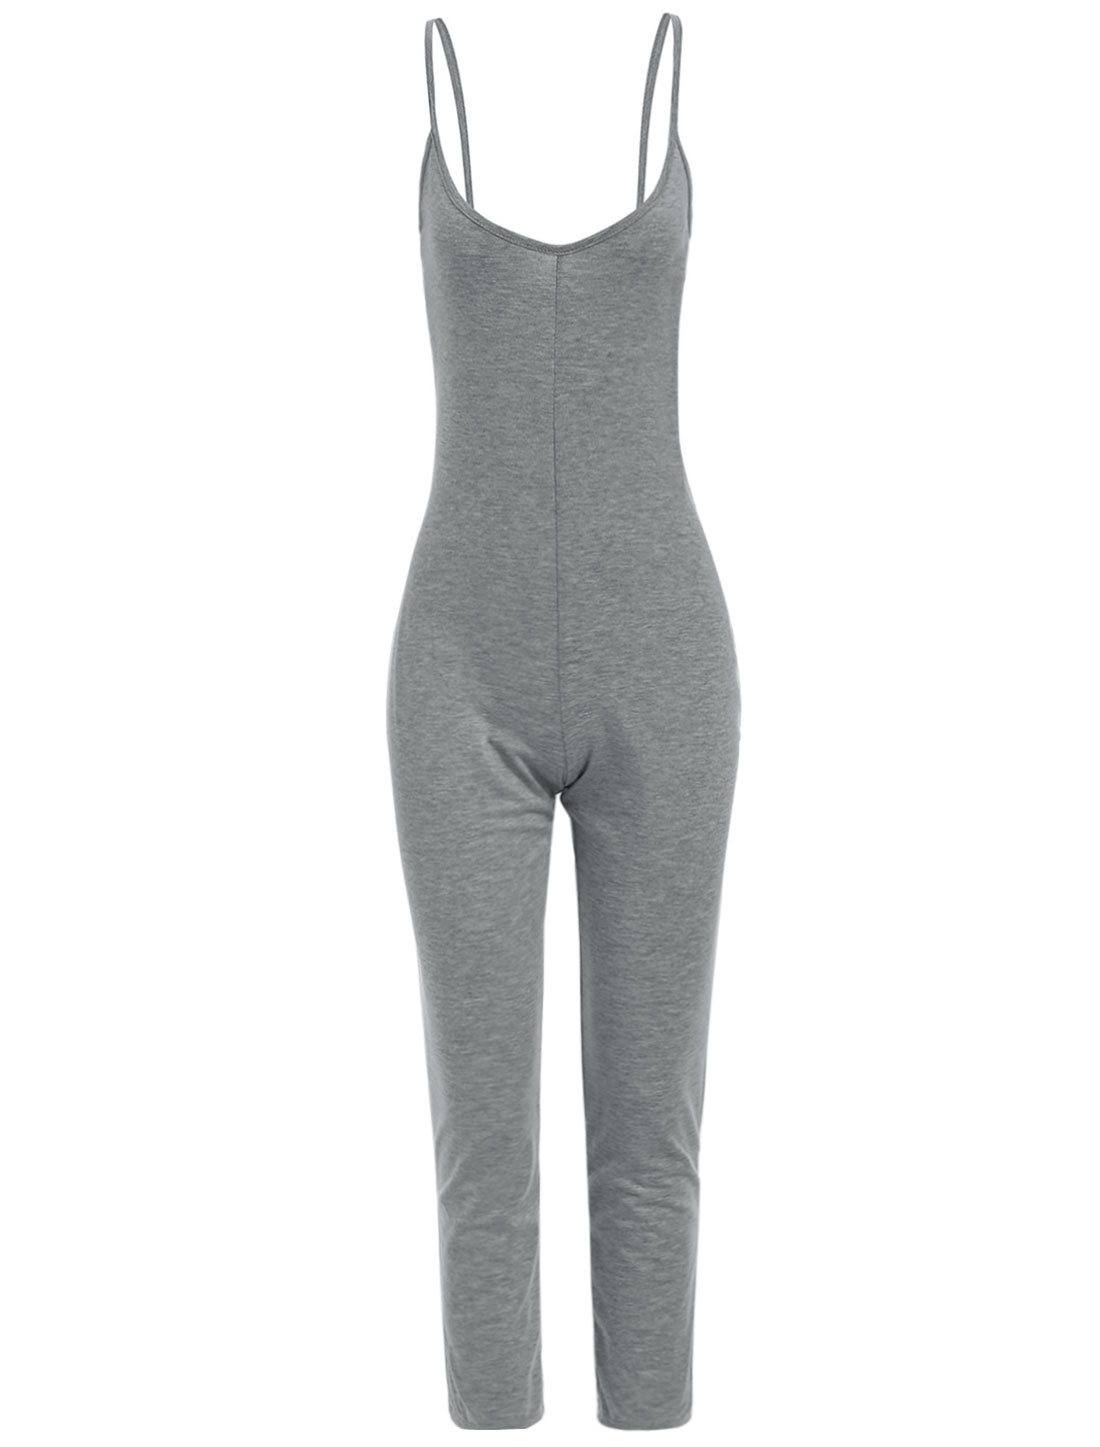 Ladies Spaghetti Strap Scoop Neck Backless Casual Jumpsuit Gray L